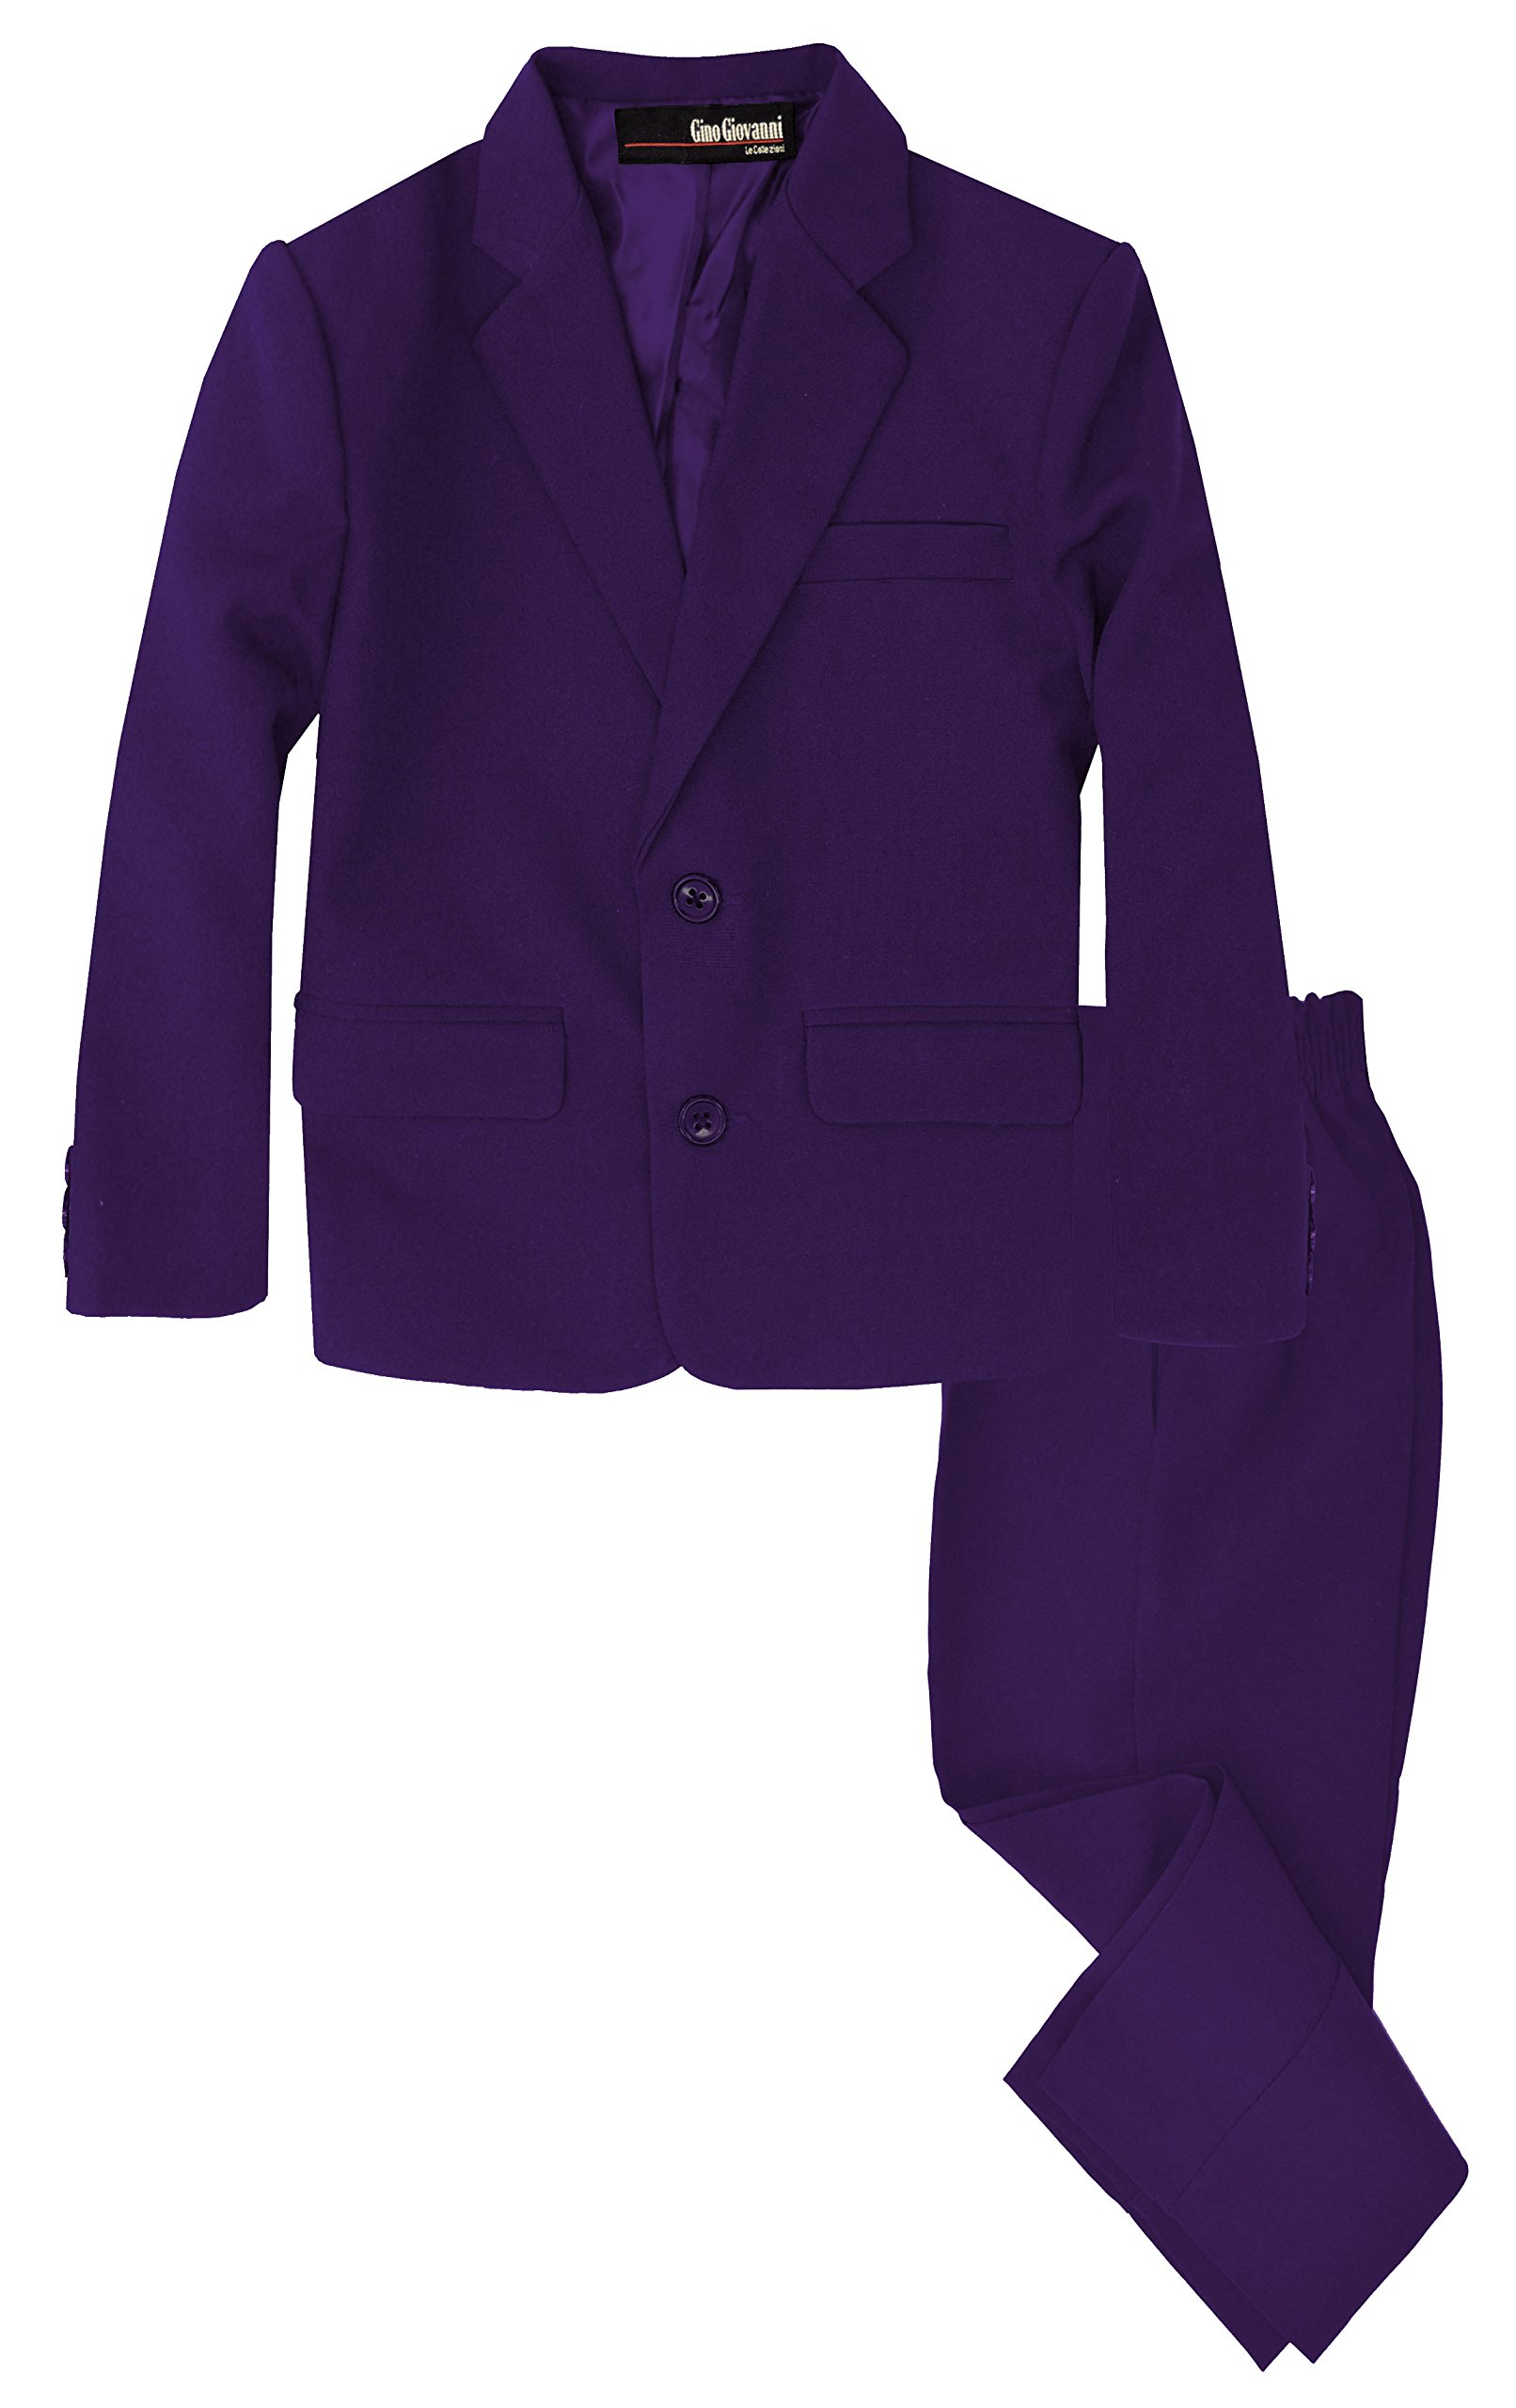 G218 Boys 2 Piece Suit Set Toddler to Teen (X-Large / 18-24 Months, Purple)